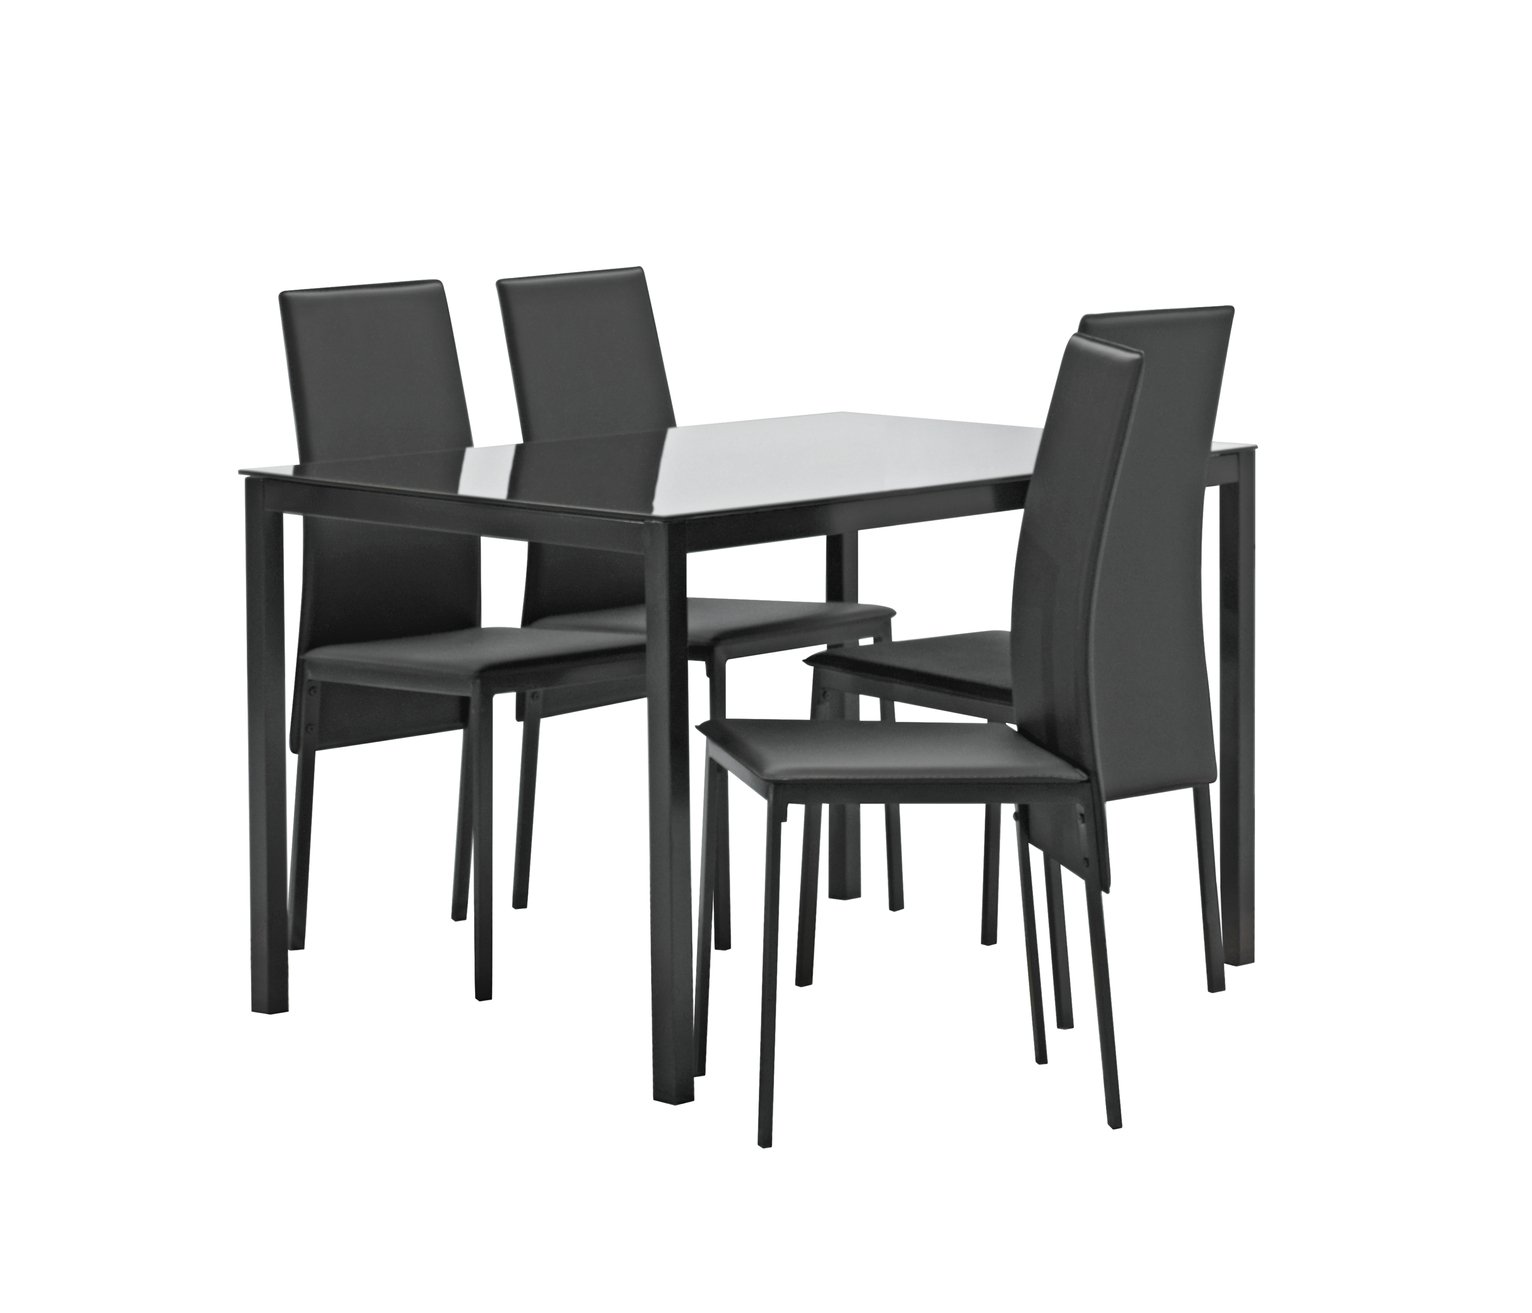 Superieur Buy Argos Home Lido Glass Dining Table U0026 4 Chairs   Black | Dining Table  And Chair Sets | Argos